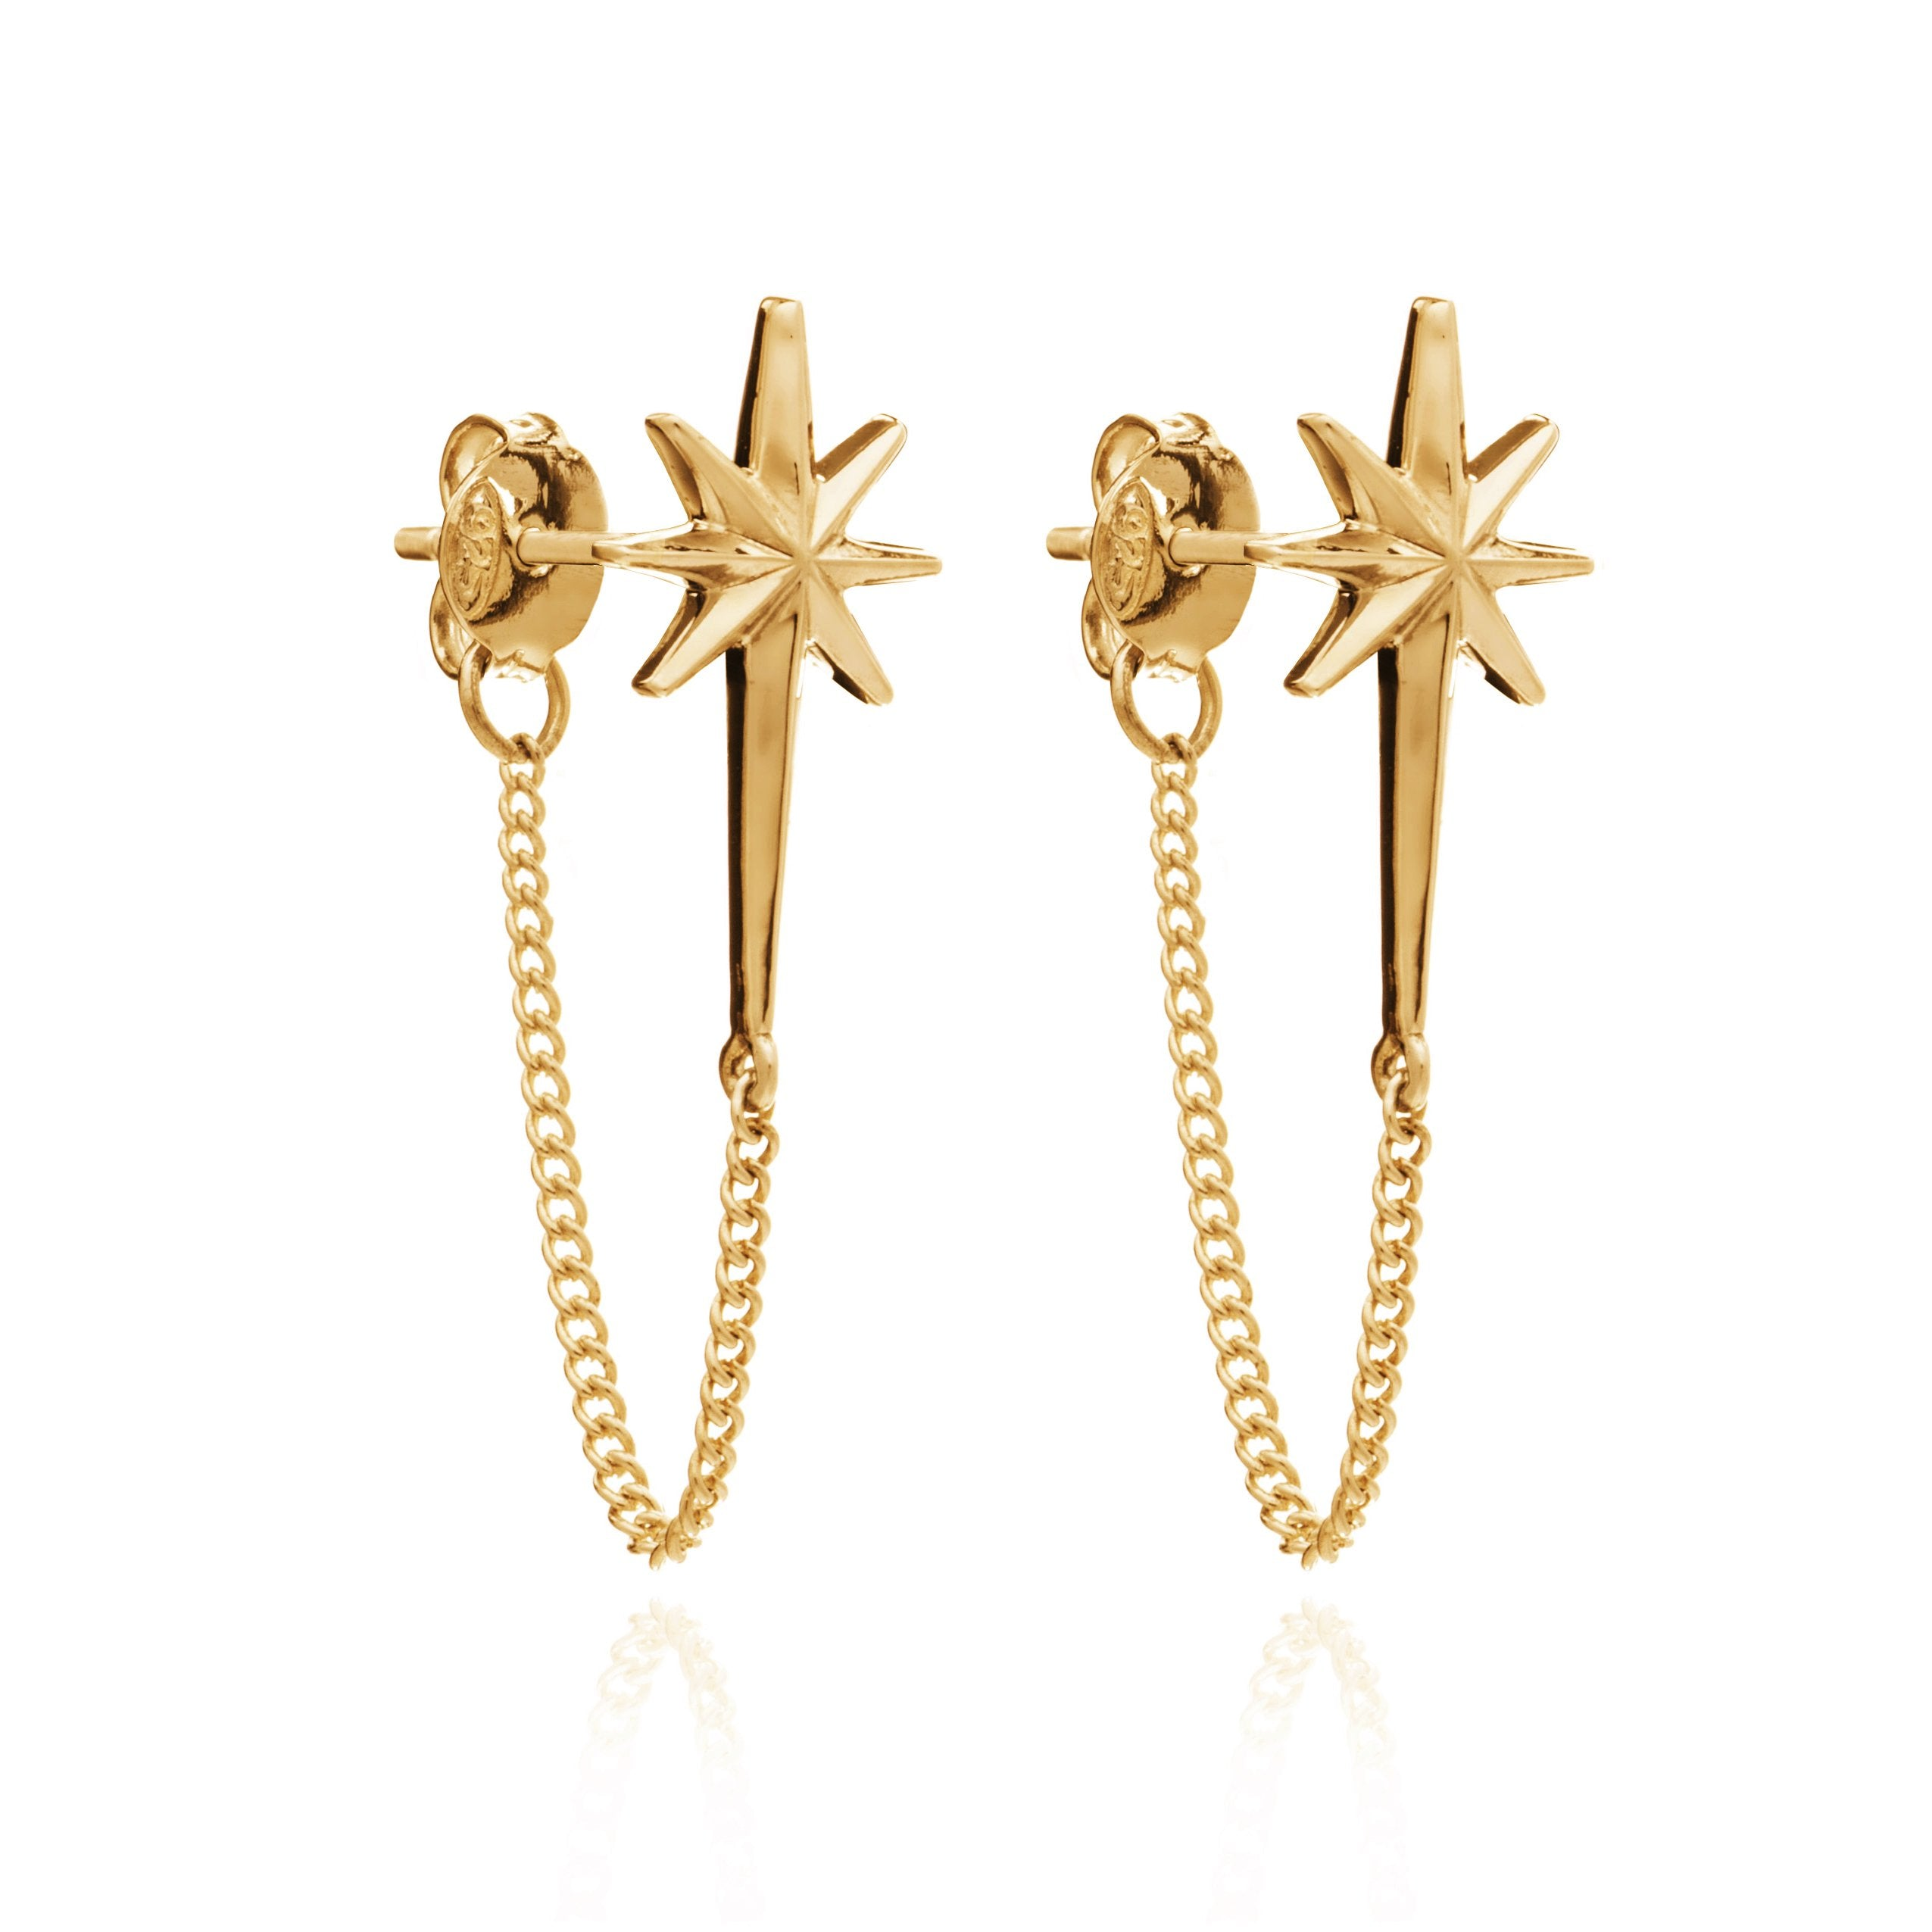 Rockstar Chain Earrings